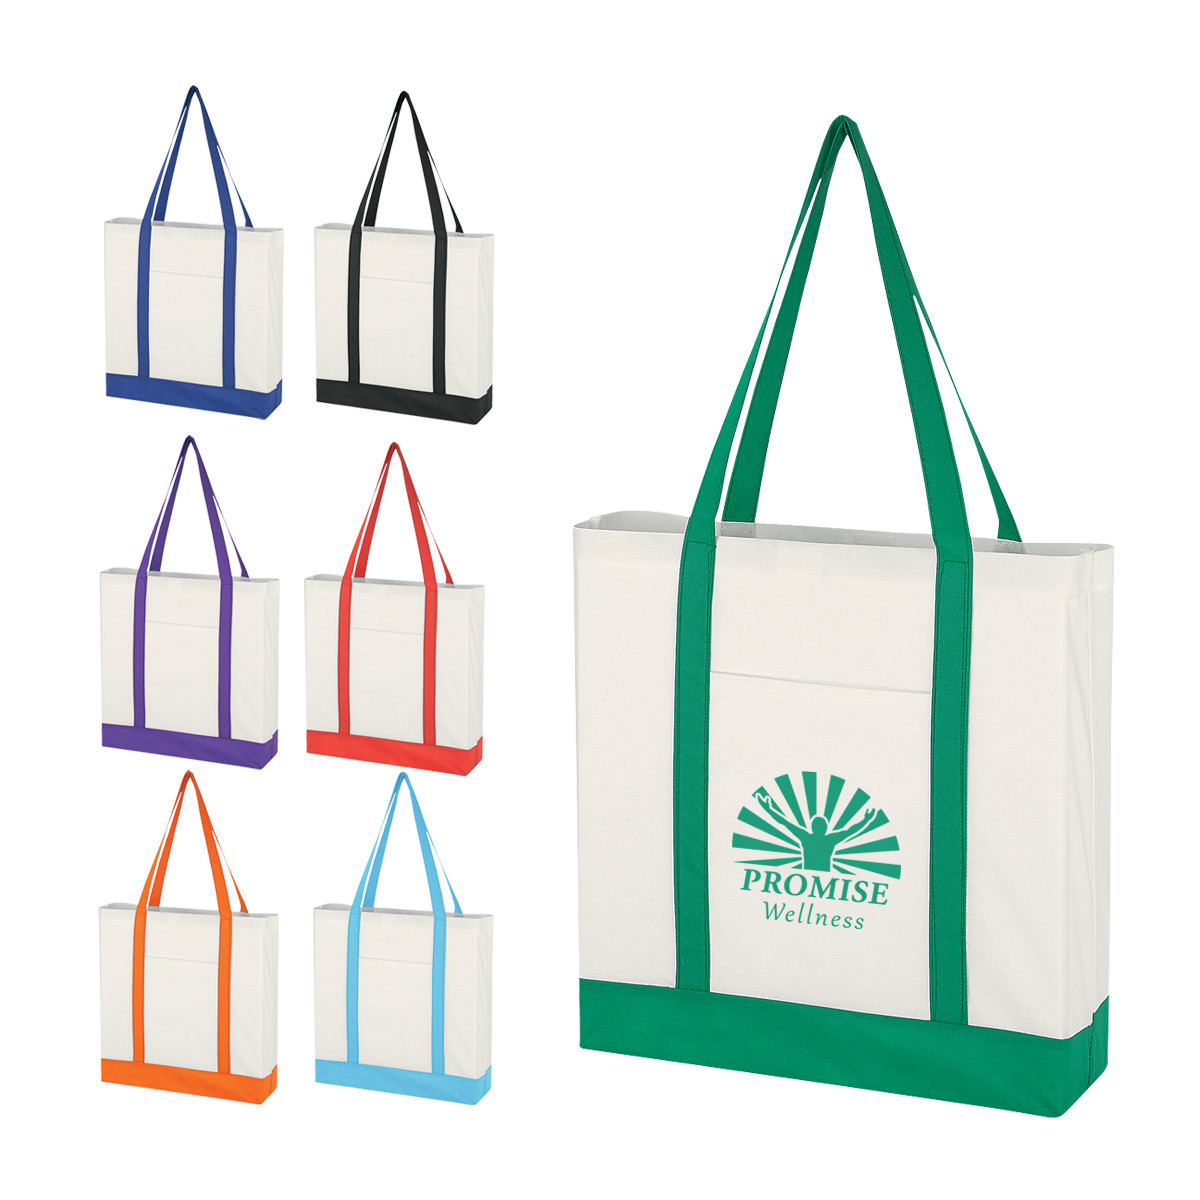 Buggy bag customize Drawstring tote printing logo pouch polyester Draw string bags